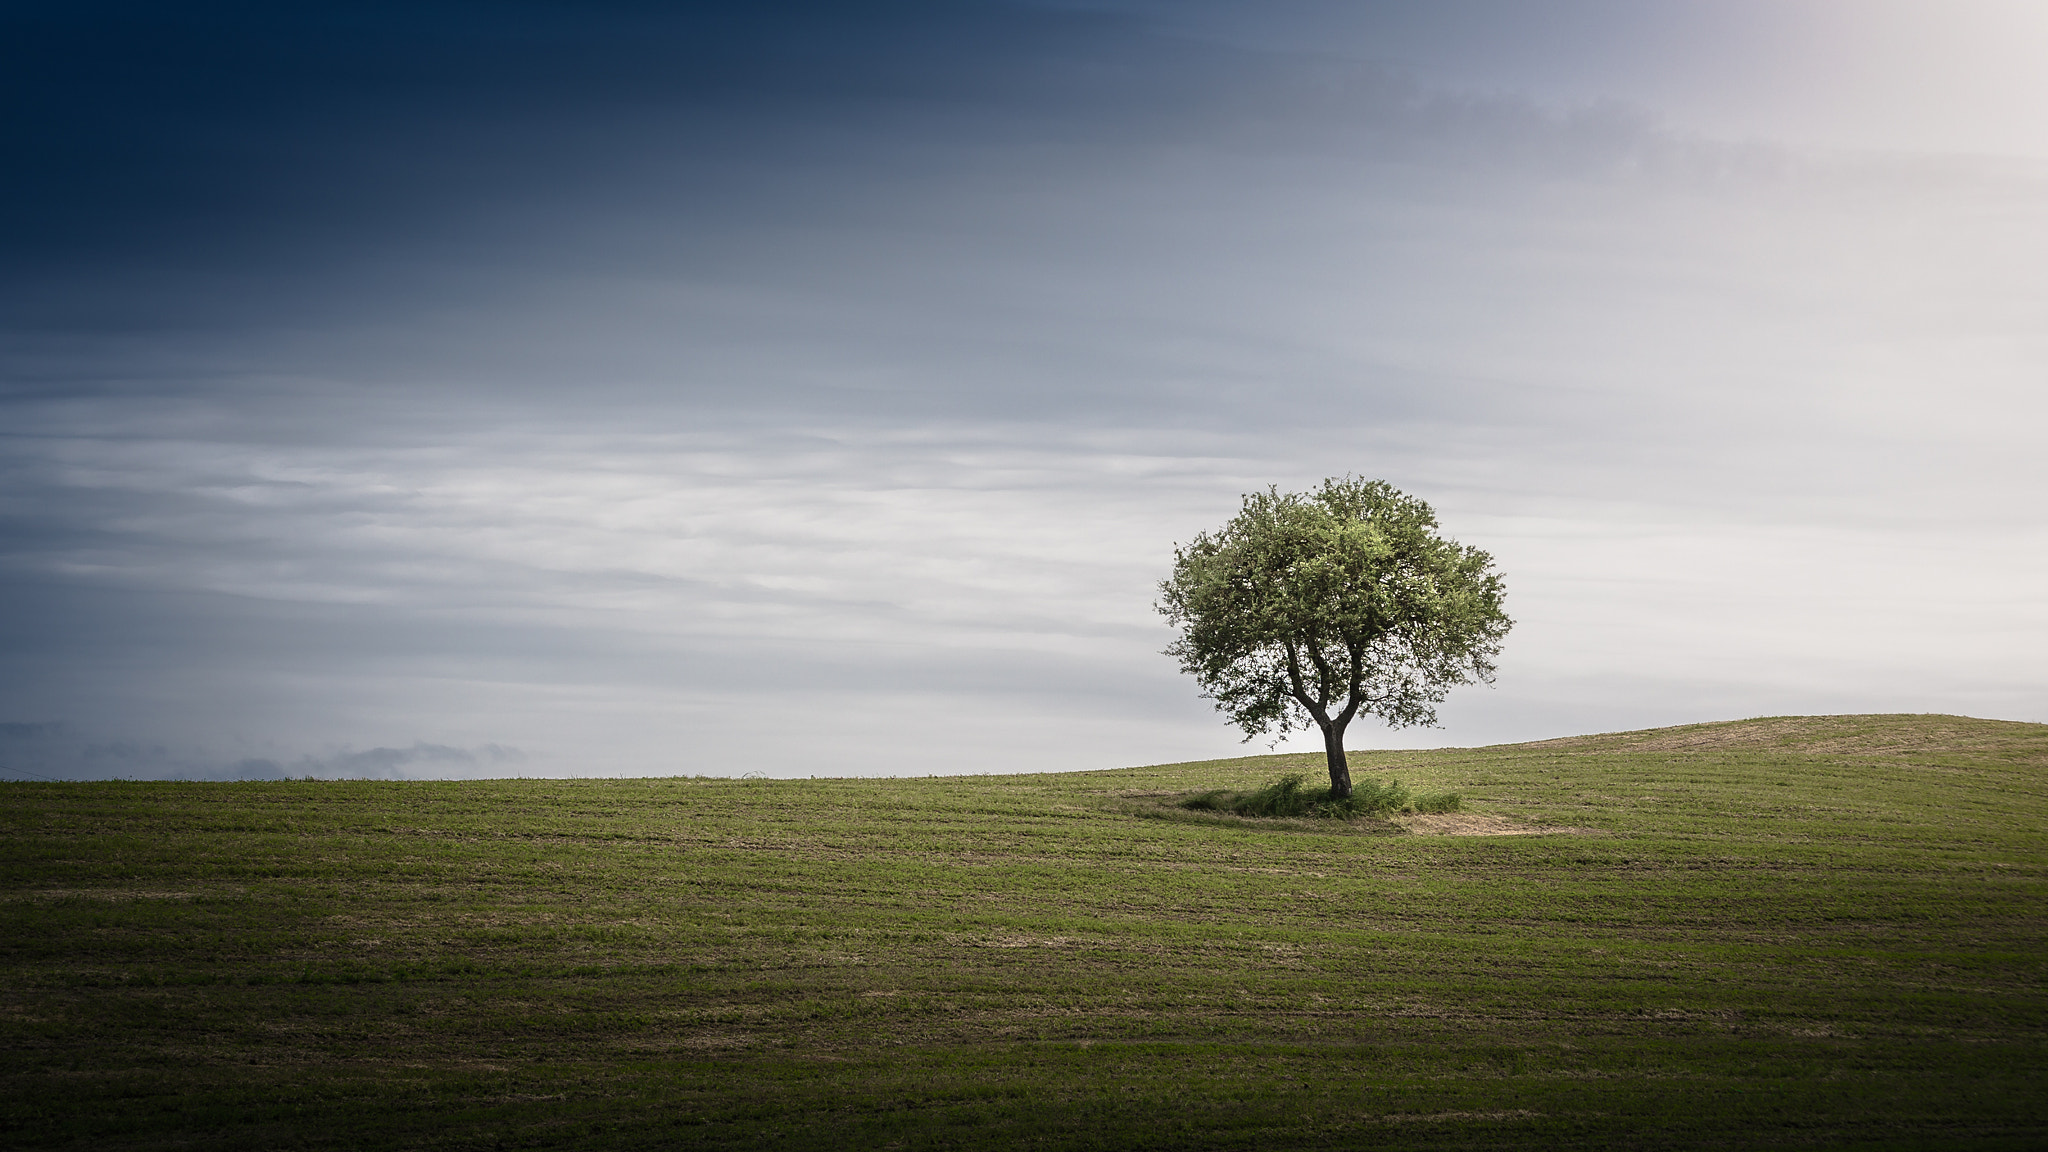 Photograph Lonely by Torsten Muehlbacher on 500px